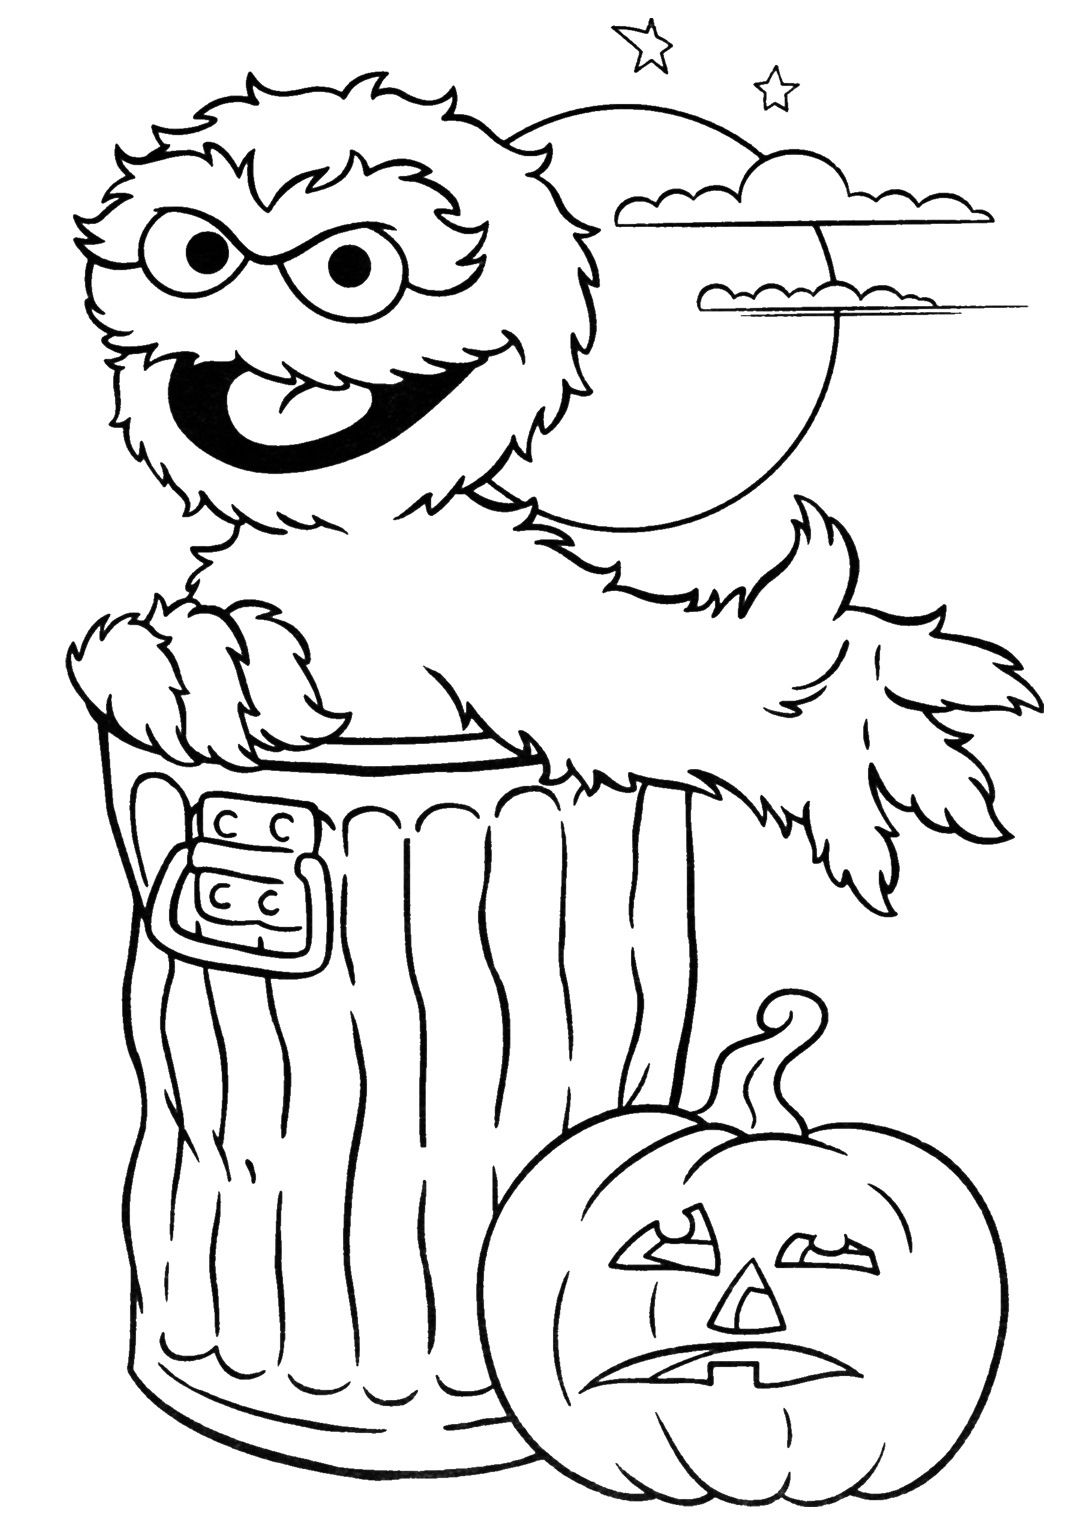 Oscar the Grouch with a Jack-O-Lantern Coloring Page | Halloween ...